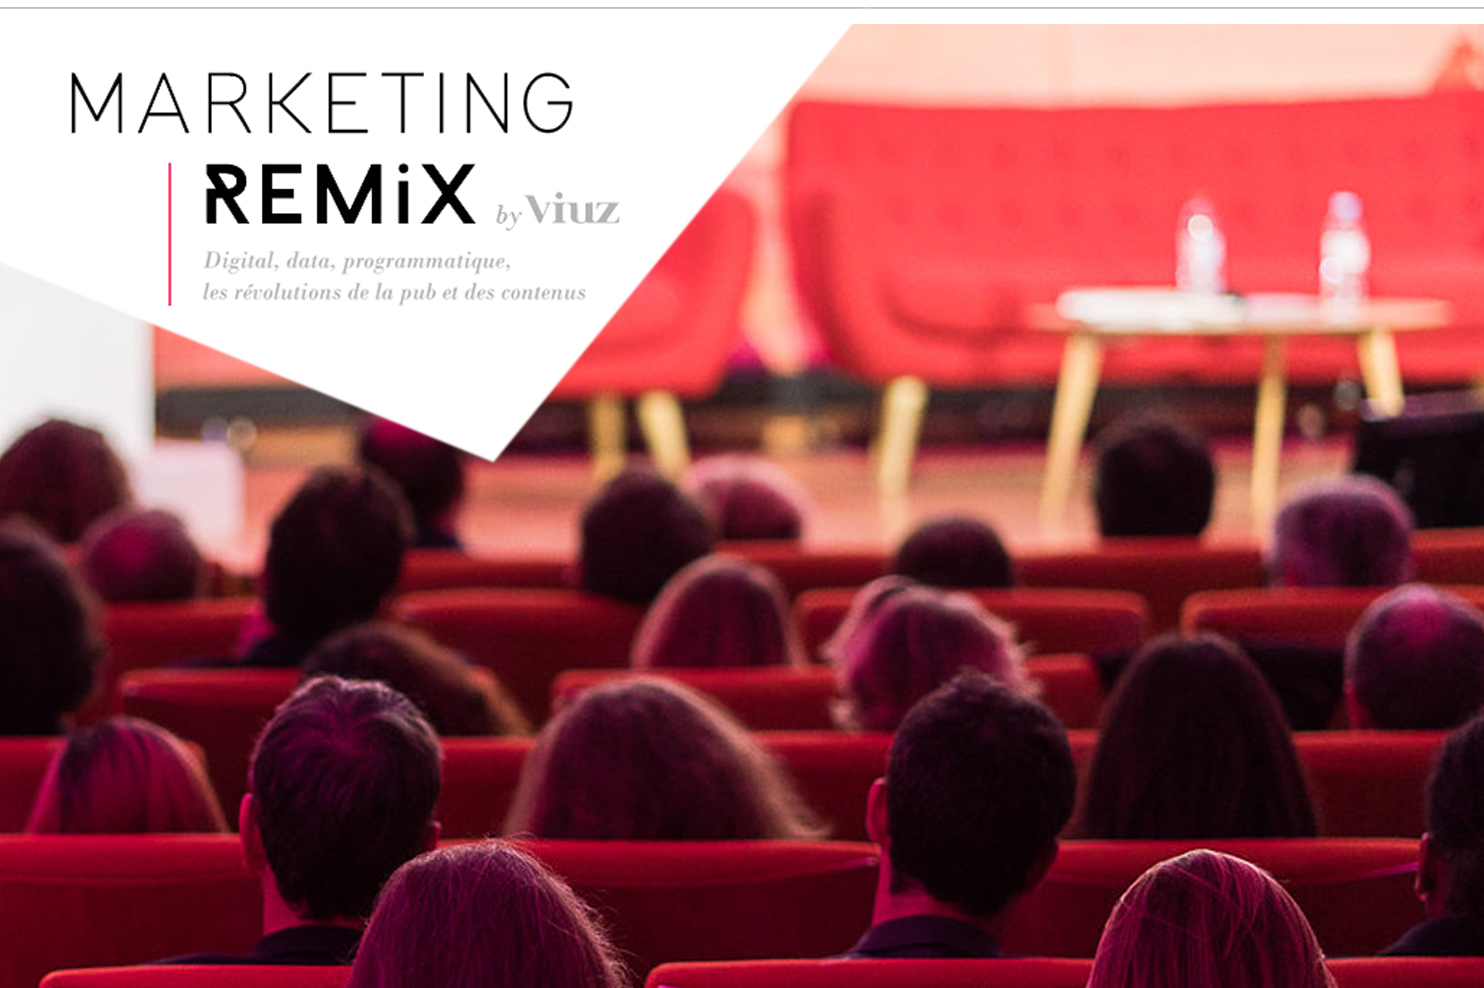 Marketing Remix by VIUZ 2019